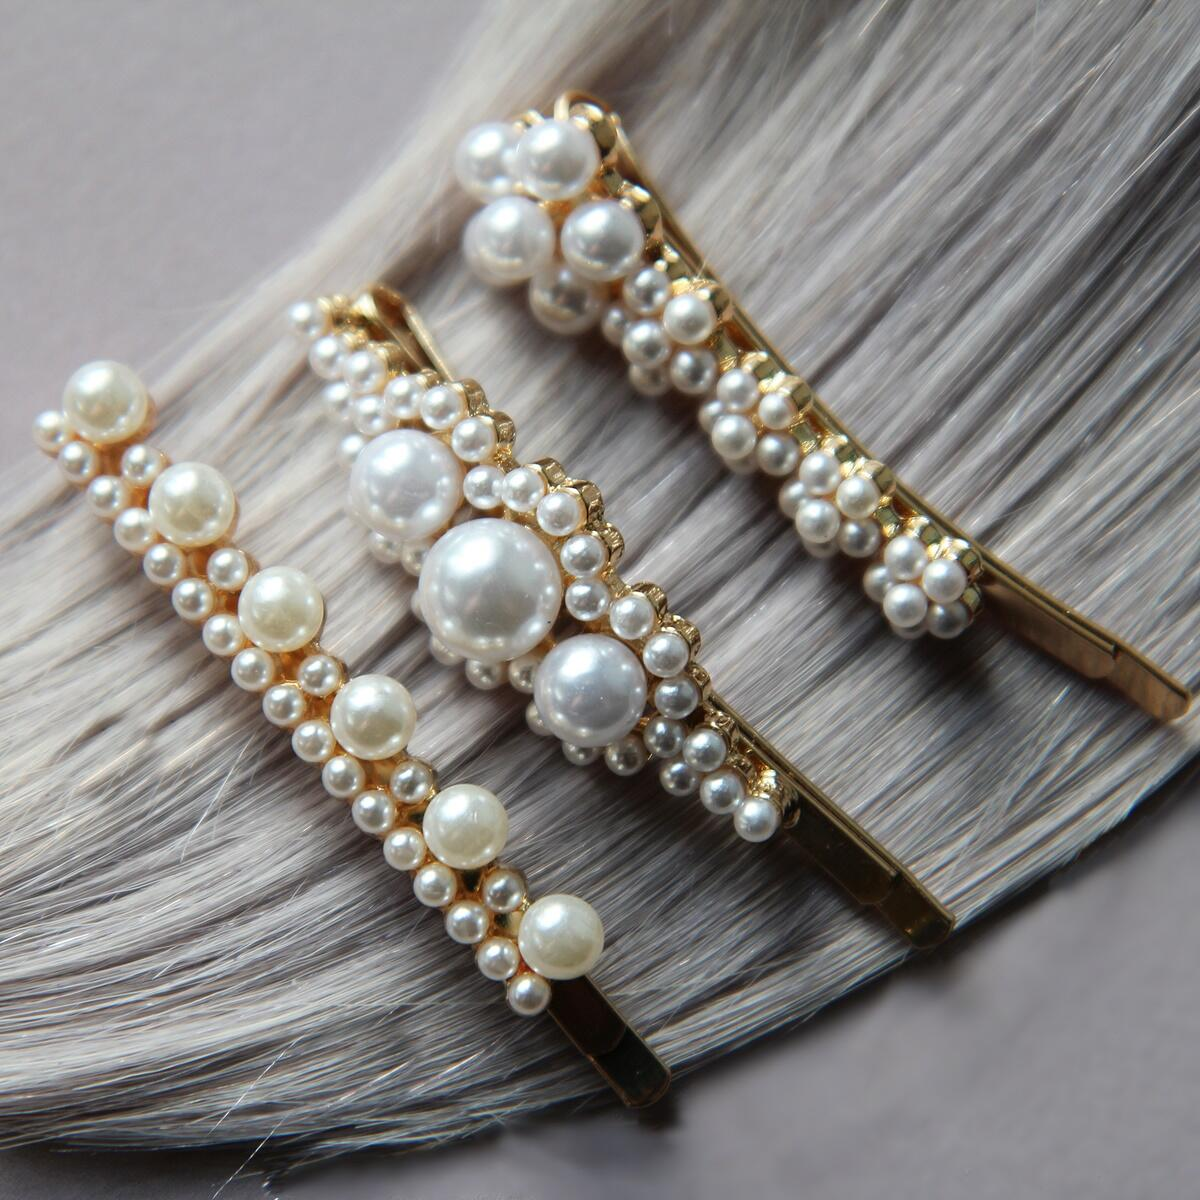 Hairpins with pearls, pack of 3 Pearl Collection no. 3